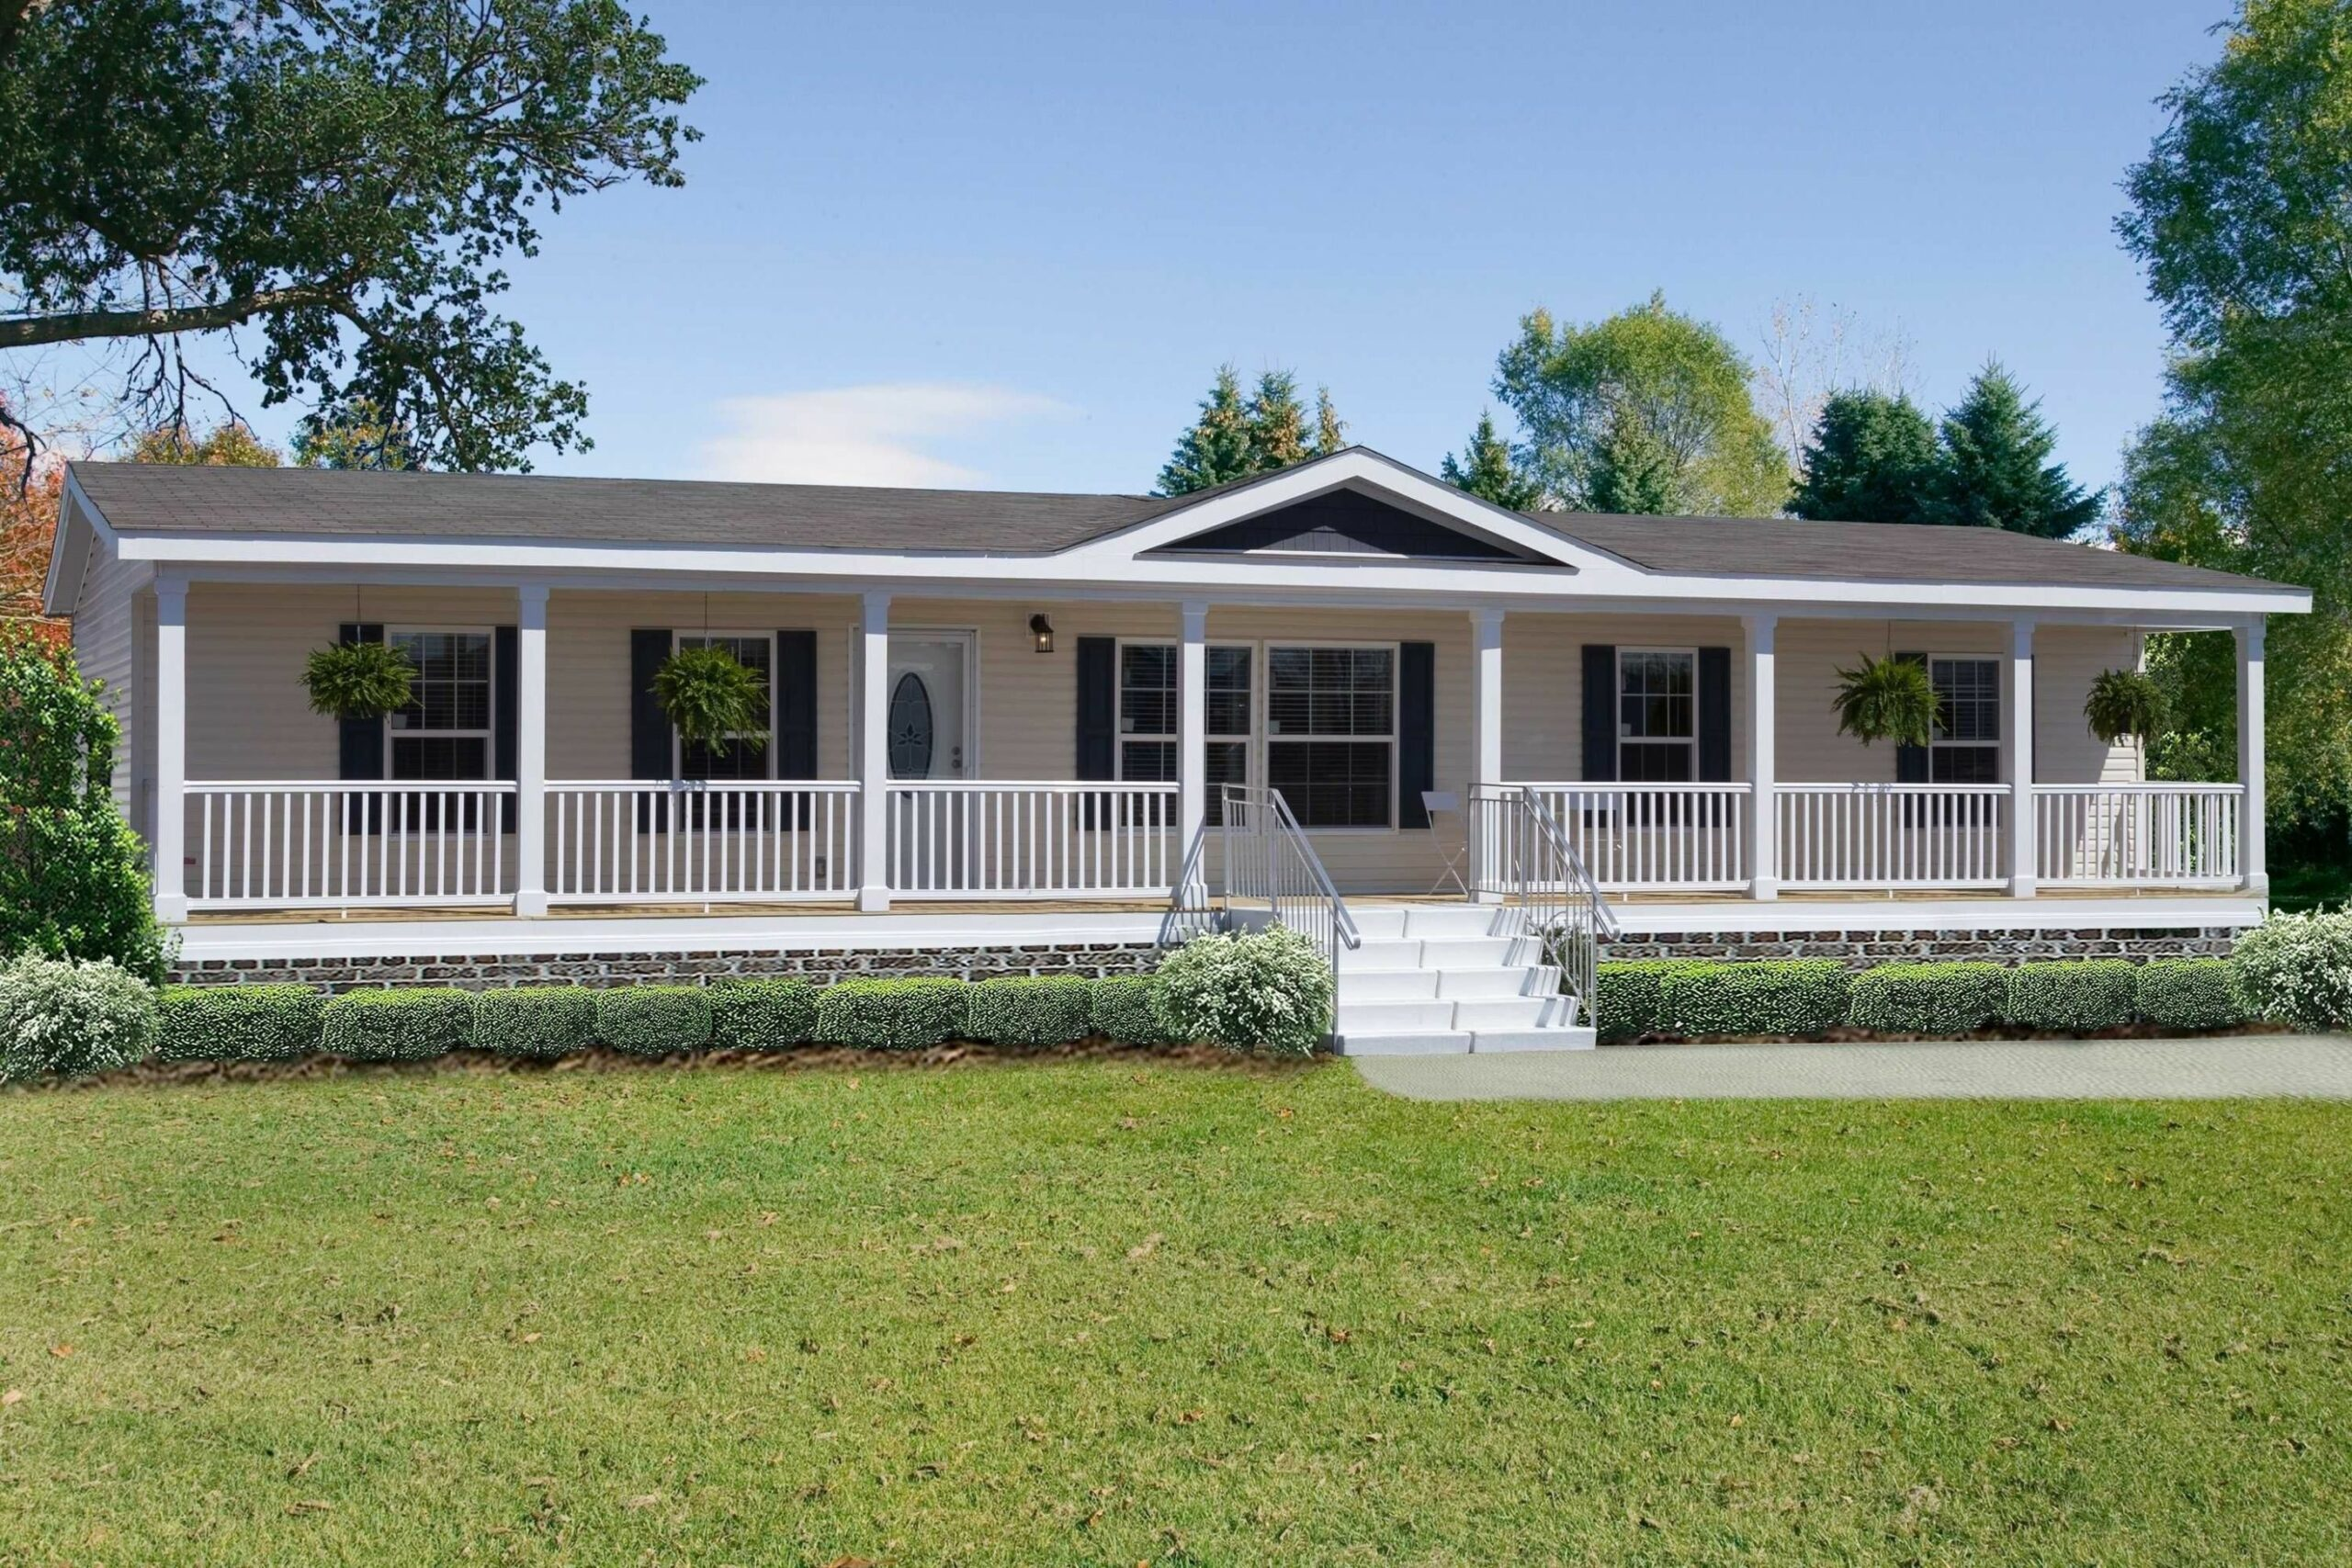 Best of Front Porch Designs For Double Wide Mobile Homes BW12i12 ...